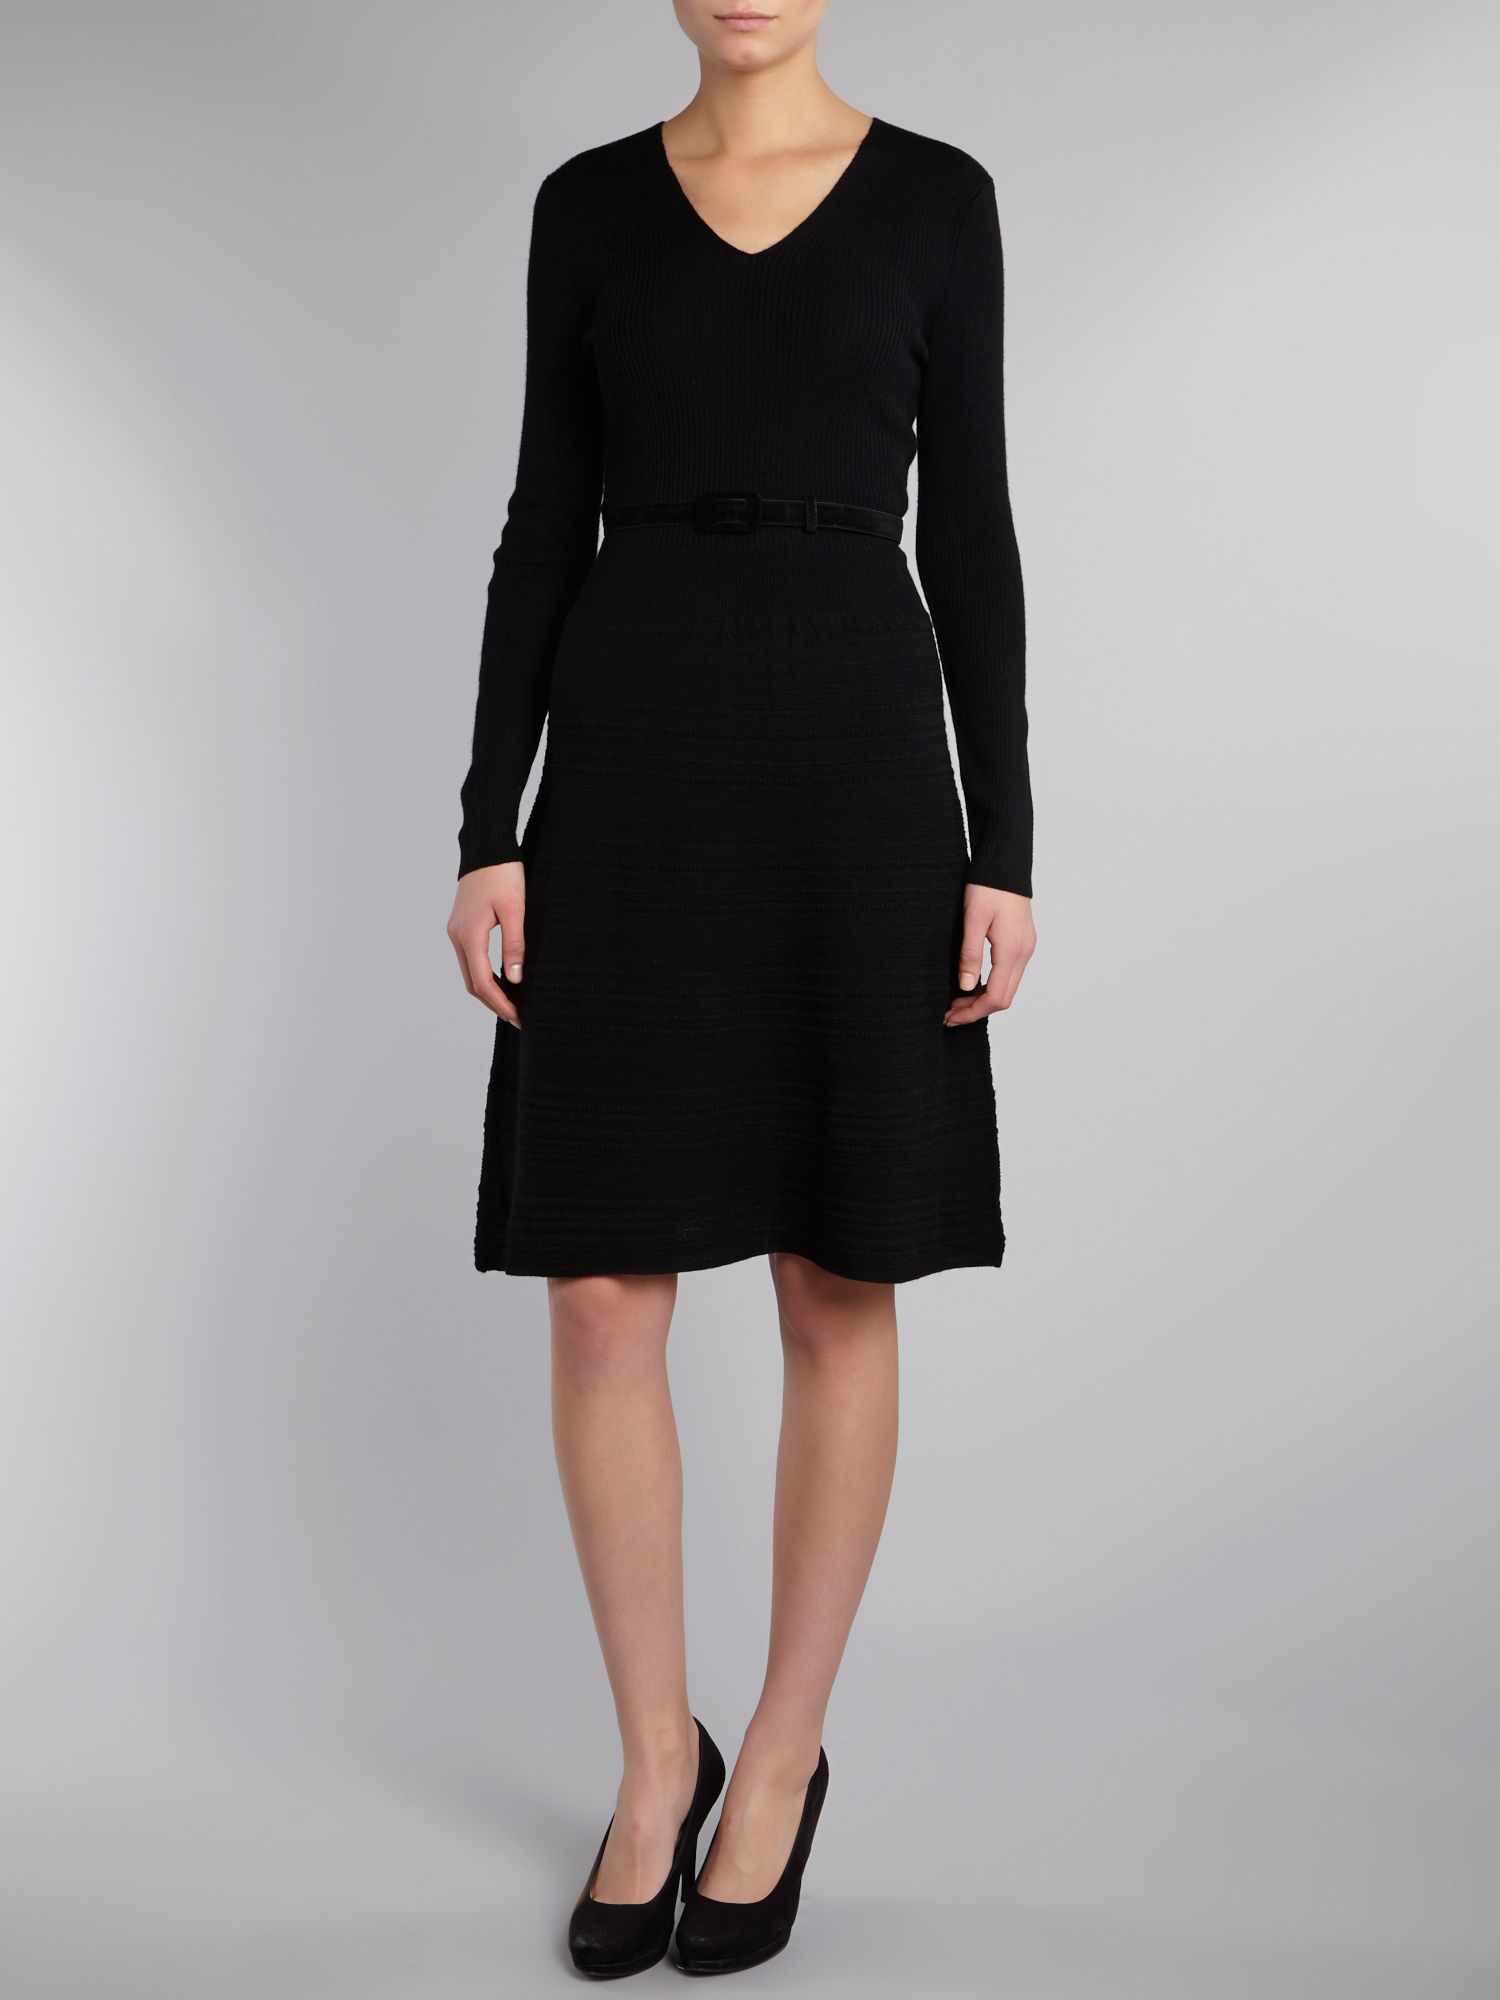 Long sleeve v neck dress with belt